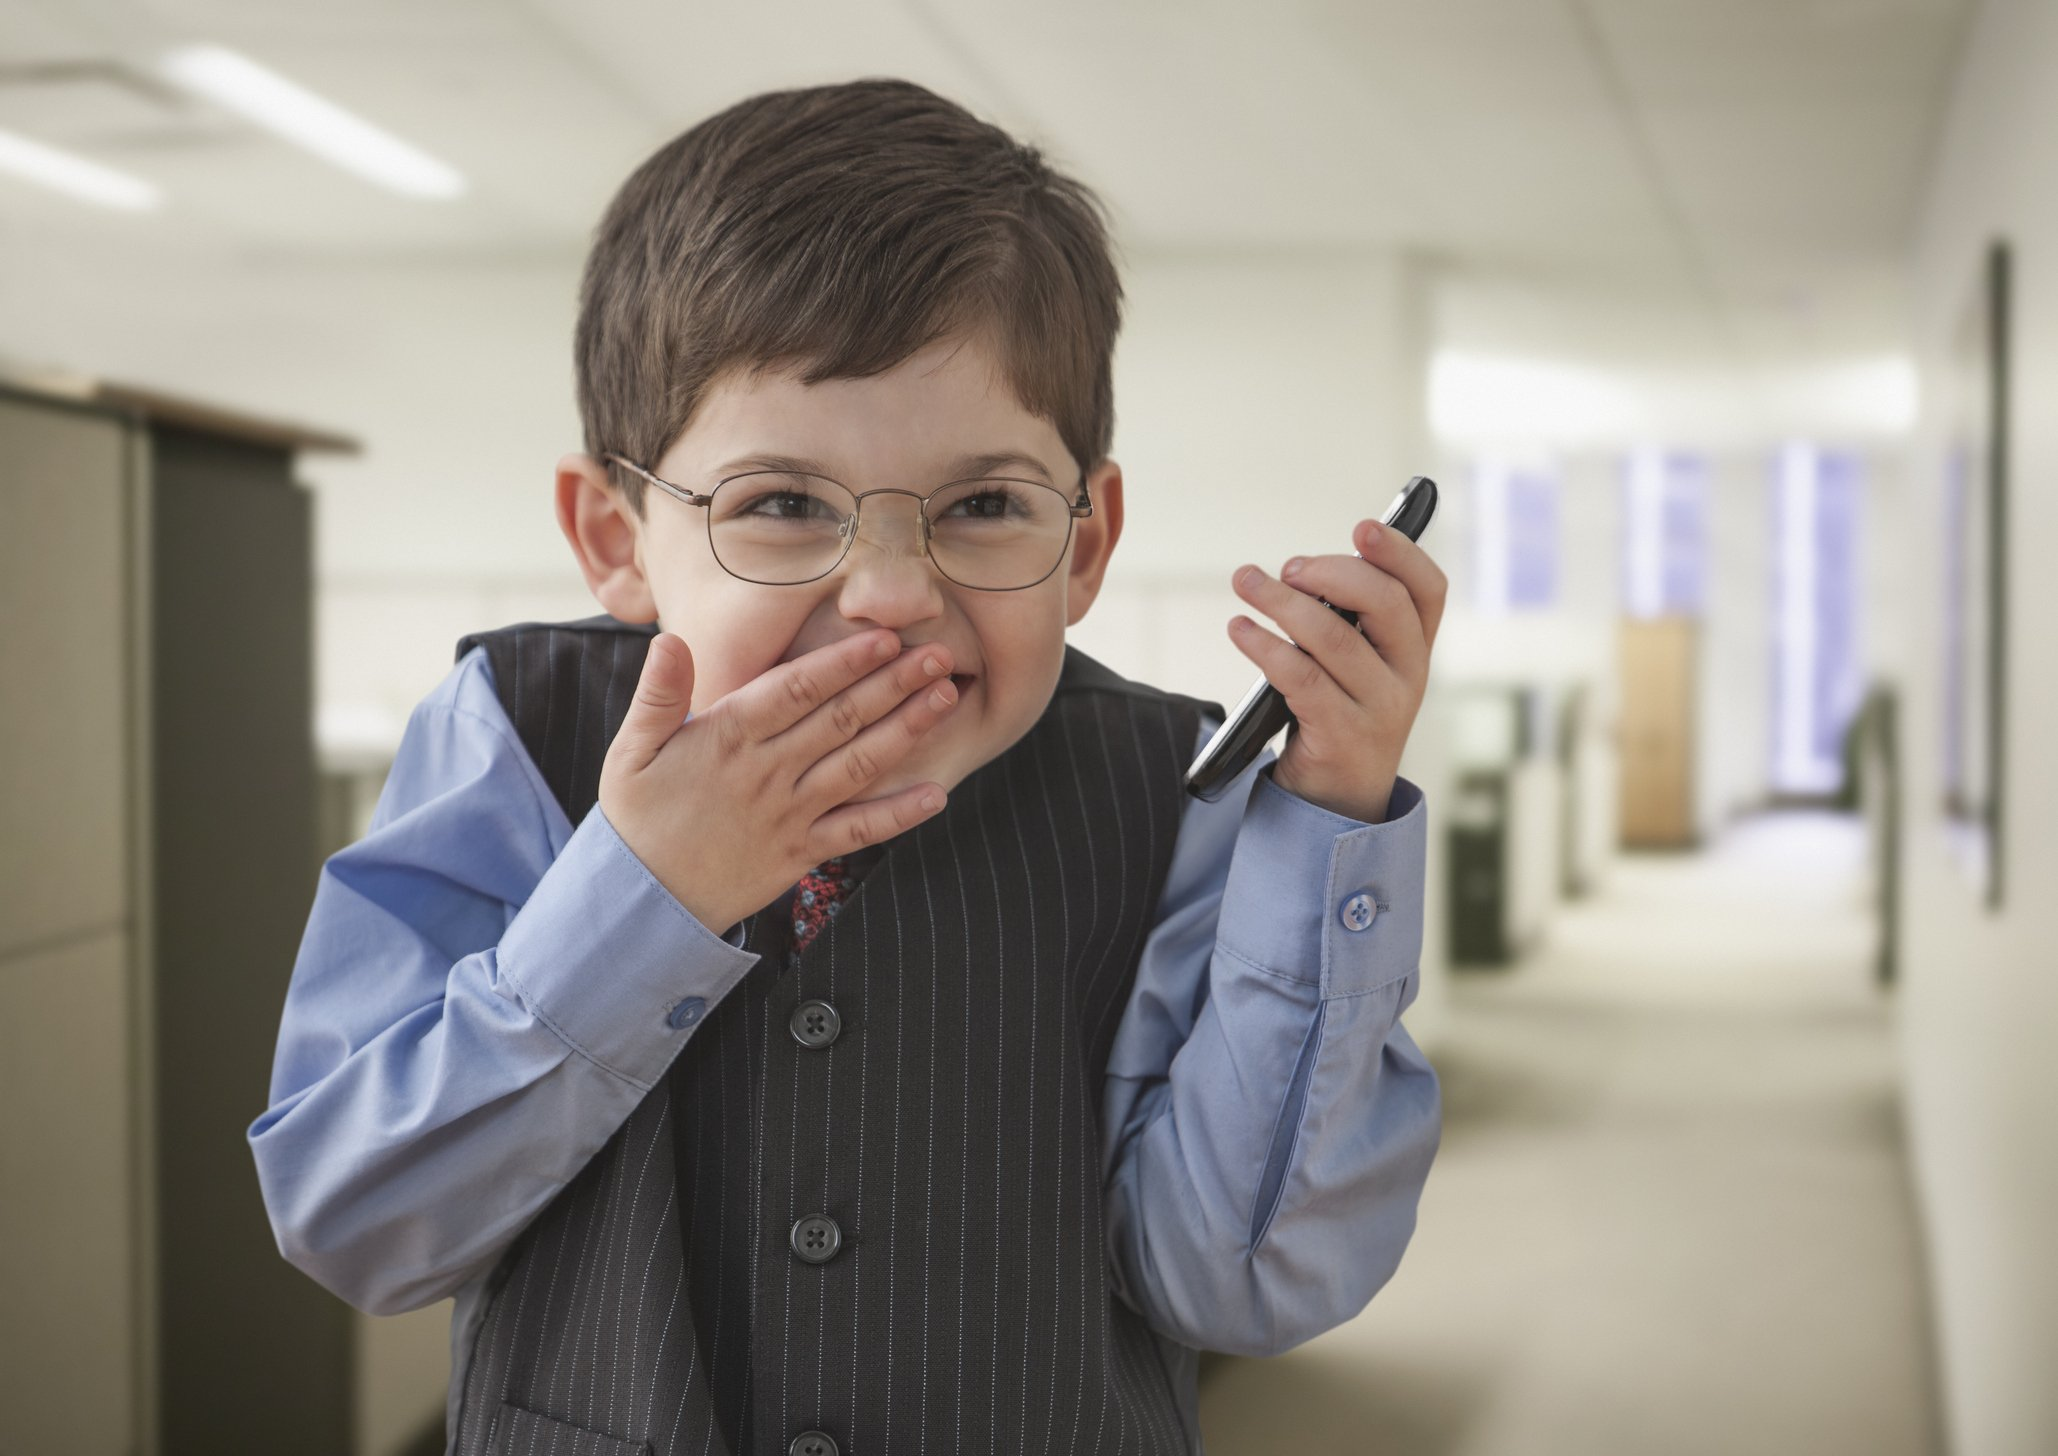 Photo of boy wearing businessman outfit in office | Photo: Getty Images